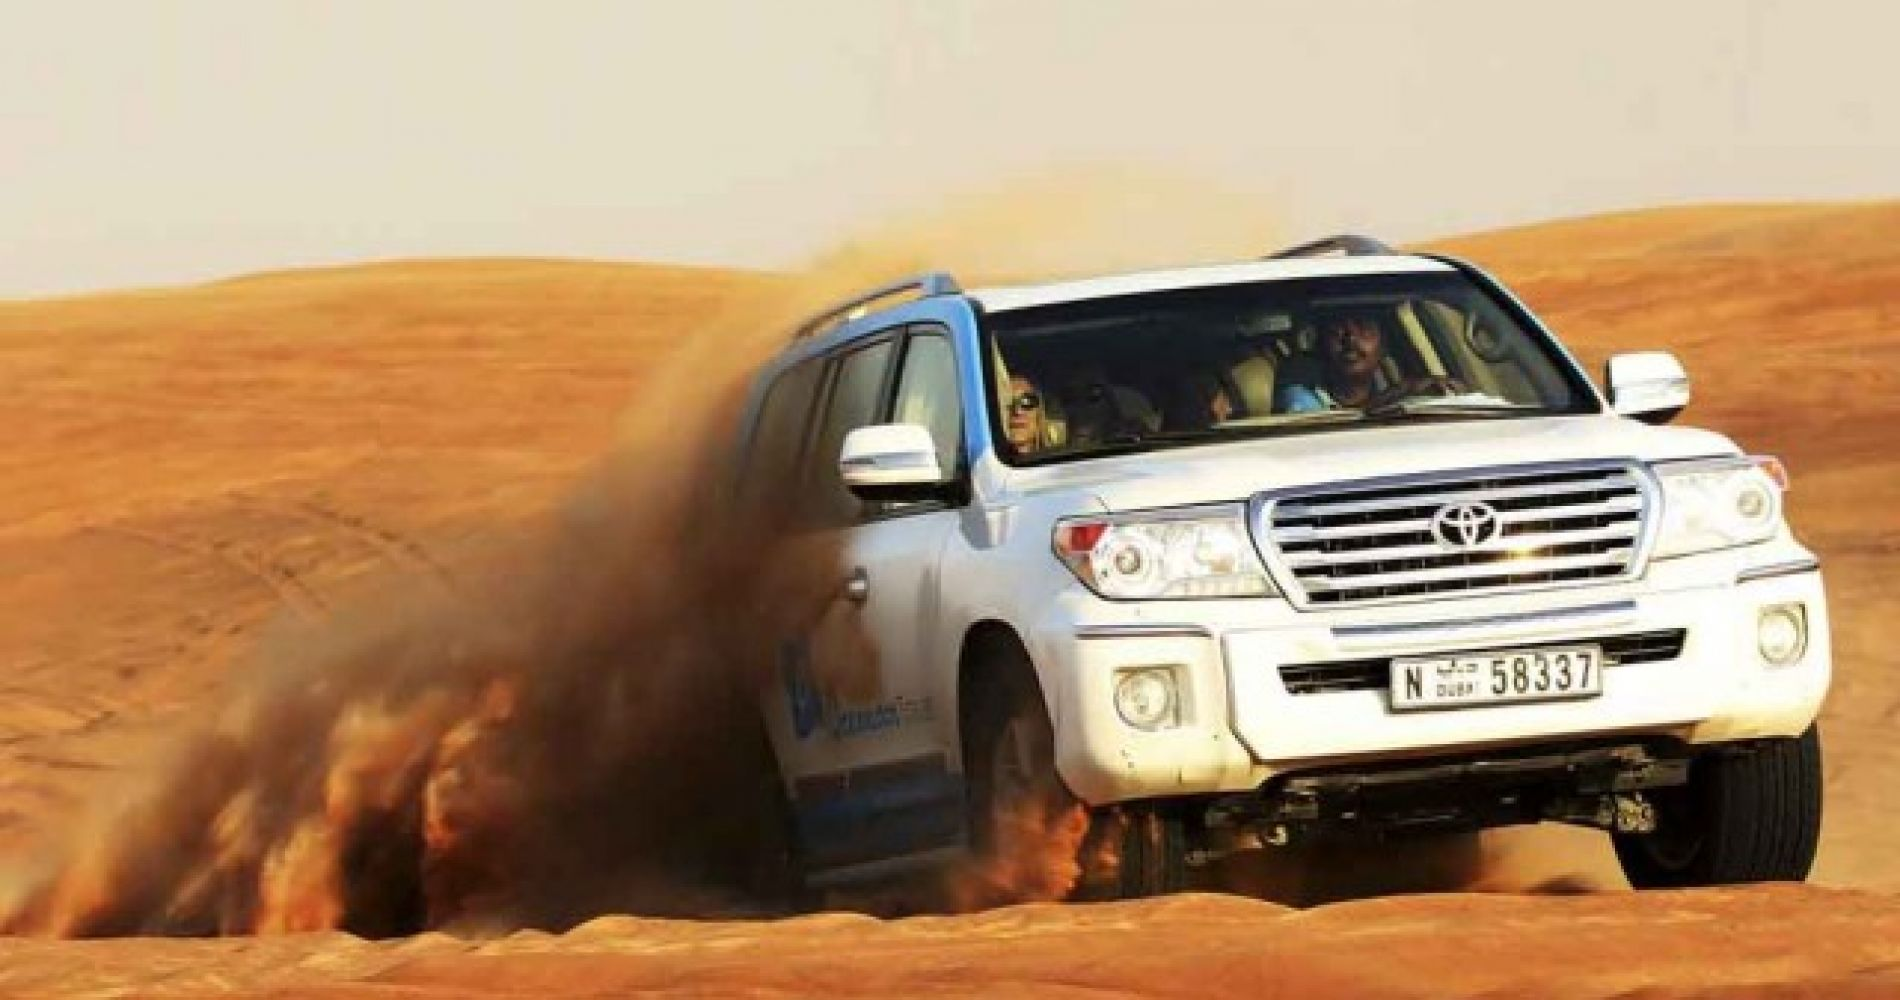 Royal Desert Safari Dubai